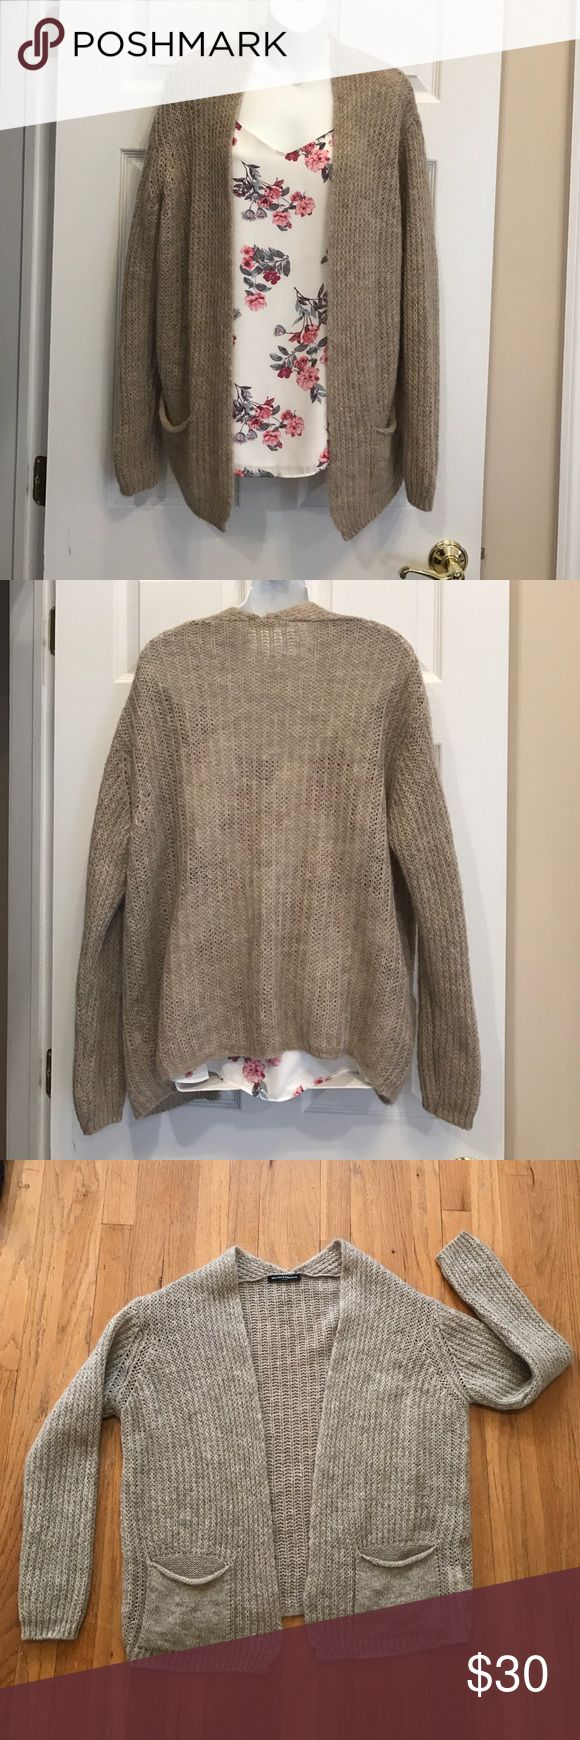 Brandy Melville Cardigan One size. Cream/tan color. Excellent condition.  Pockets in front. 70% Wool, 30% acrylic. Brandy Melville Sweaters Cardigans